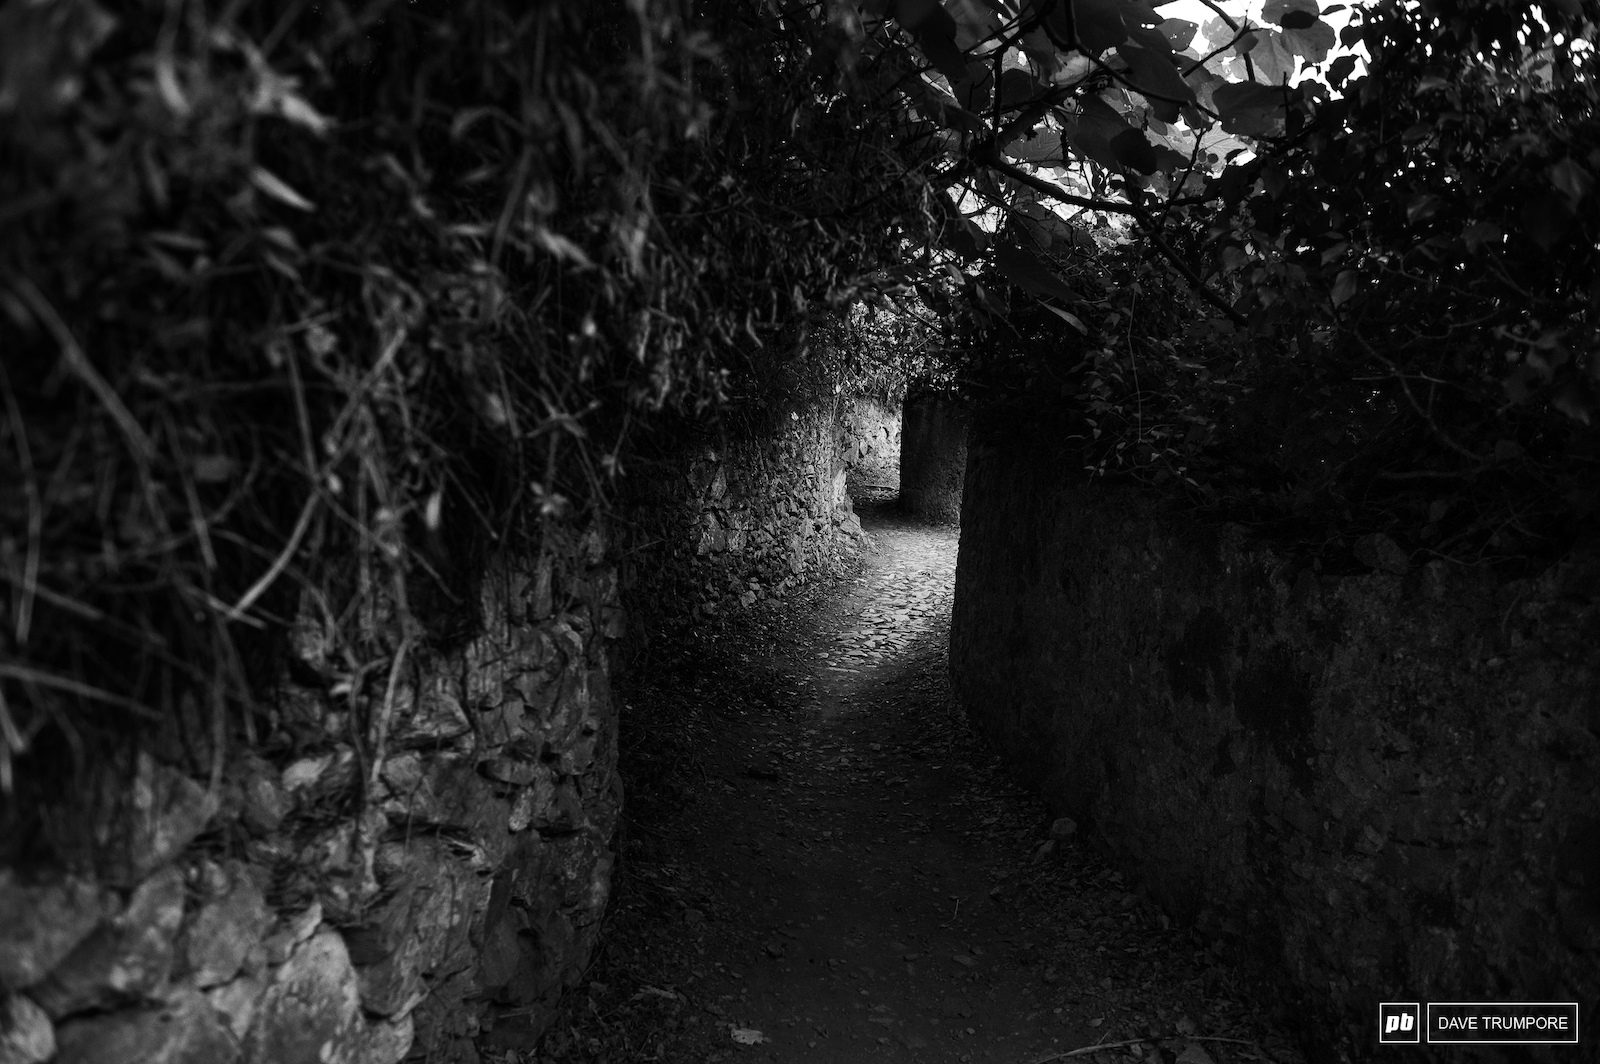 twisty ancient streets in a very old part of the world